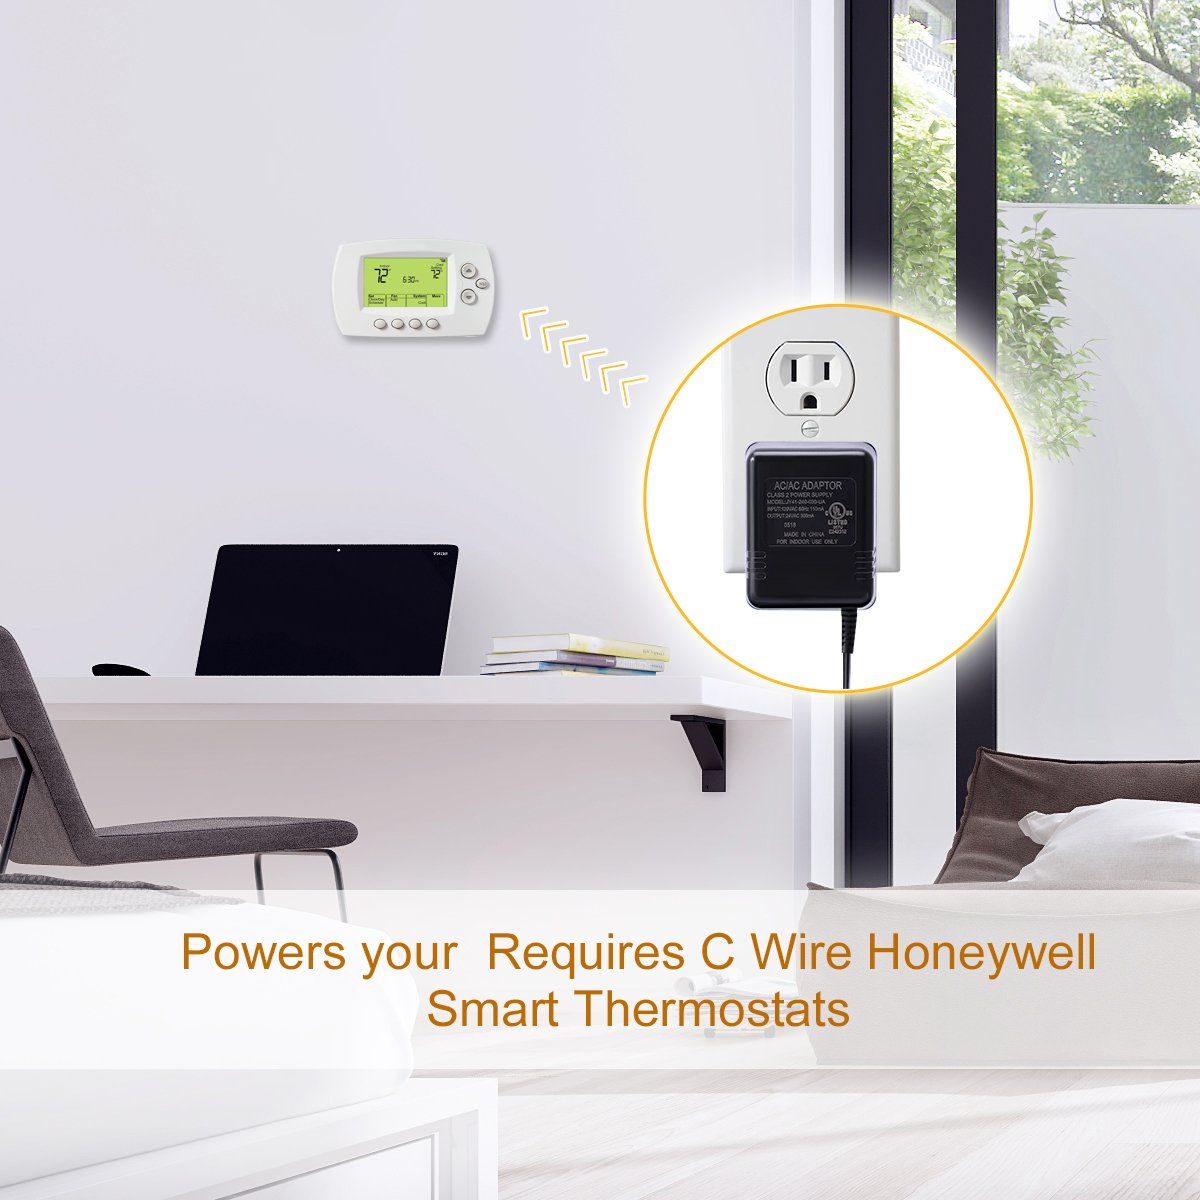 Ac24v C Wire Power Adapterlammu 24v Transformer Honeywell Thermostat Wiring Wifi For Requires Nest Smart Ecobee3 Ecobee4 164ft 5m